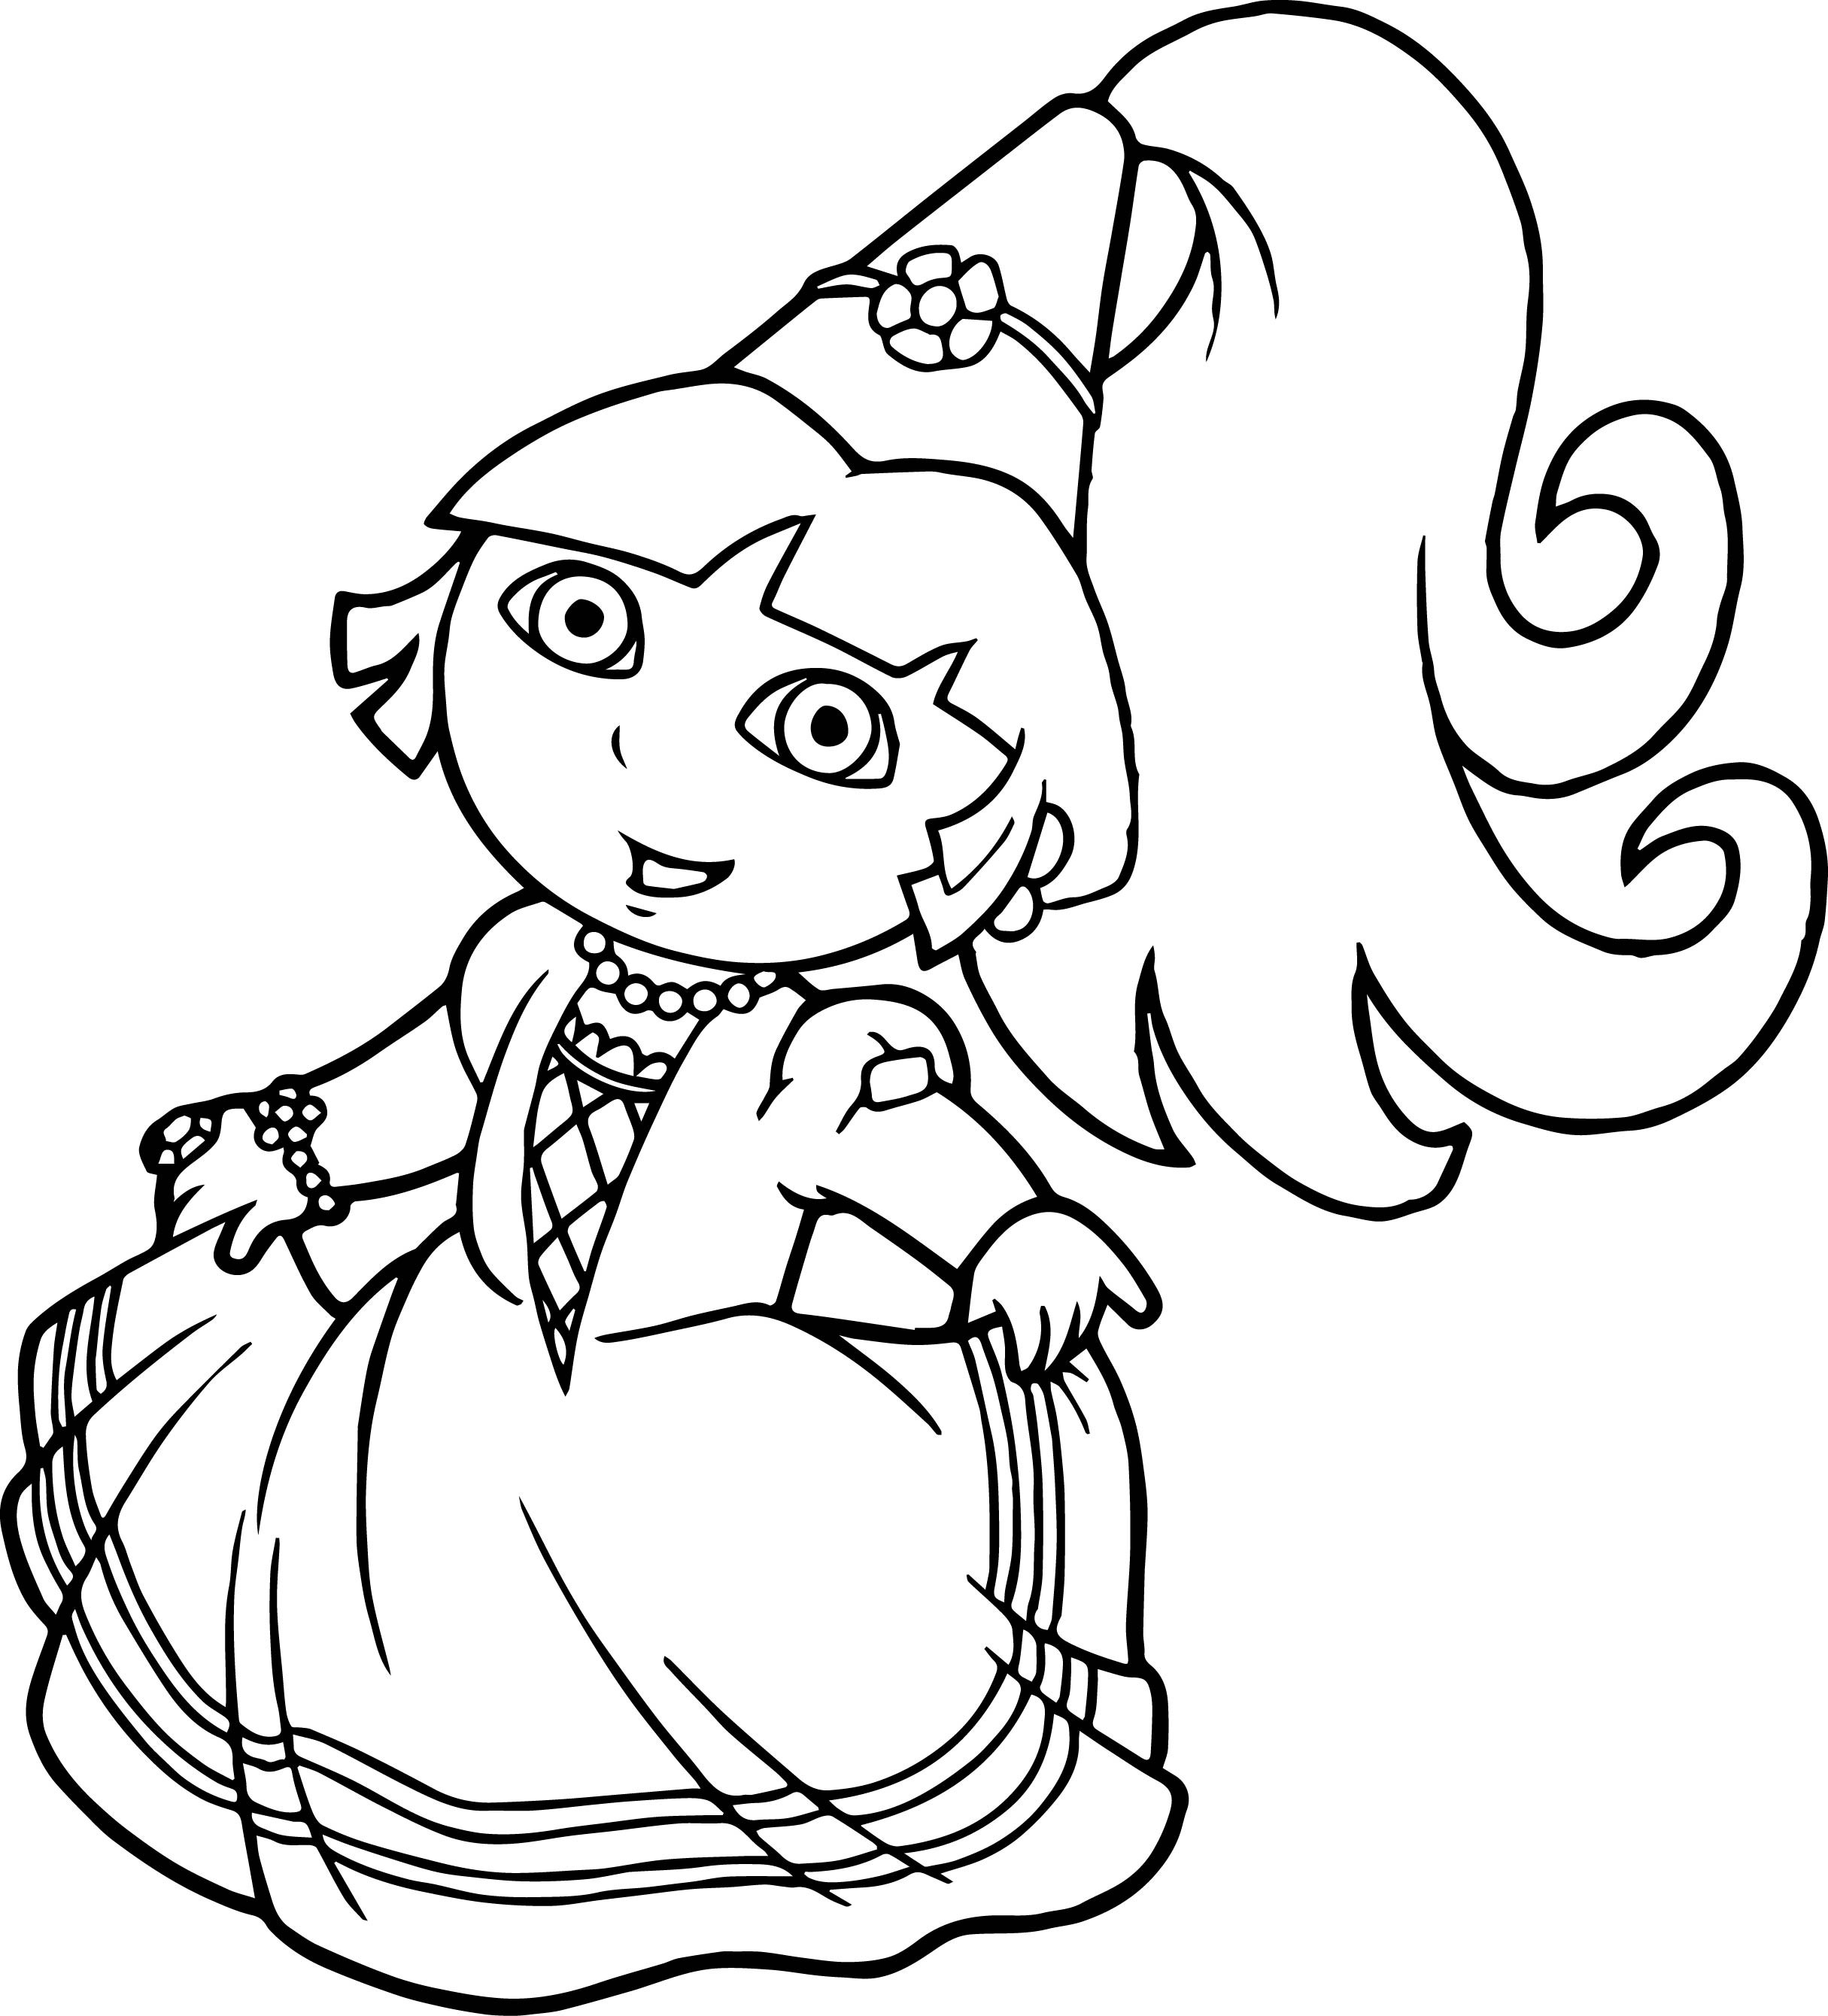 Dora Coloring Pages For Girls  dora princess coloring pages Printable